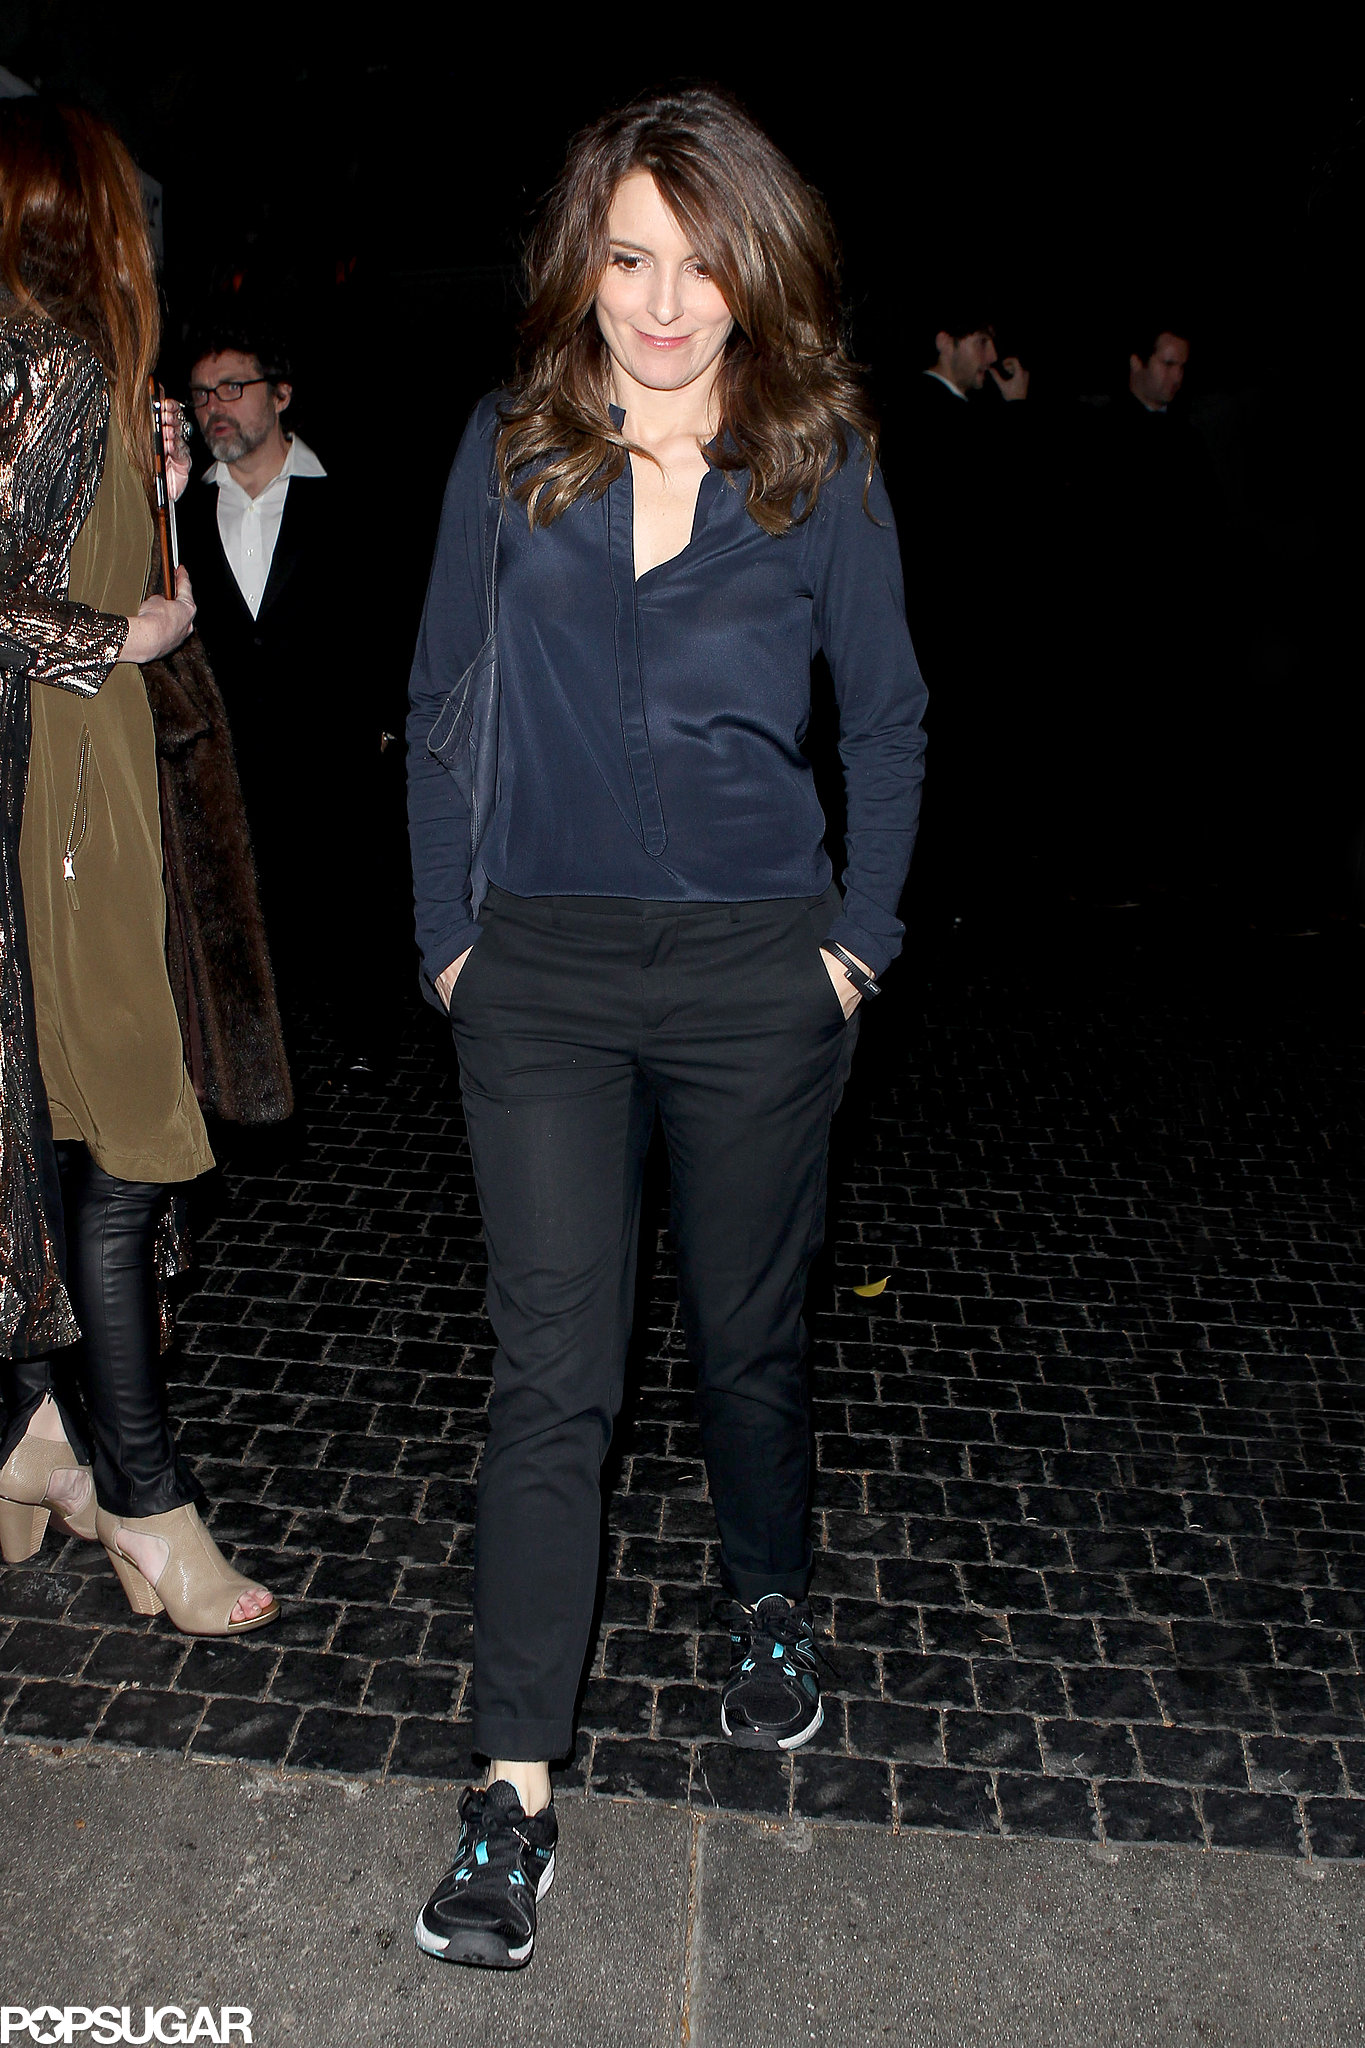 Tina Fey was dressed down as she left Chateau Marmont at the end of the night.